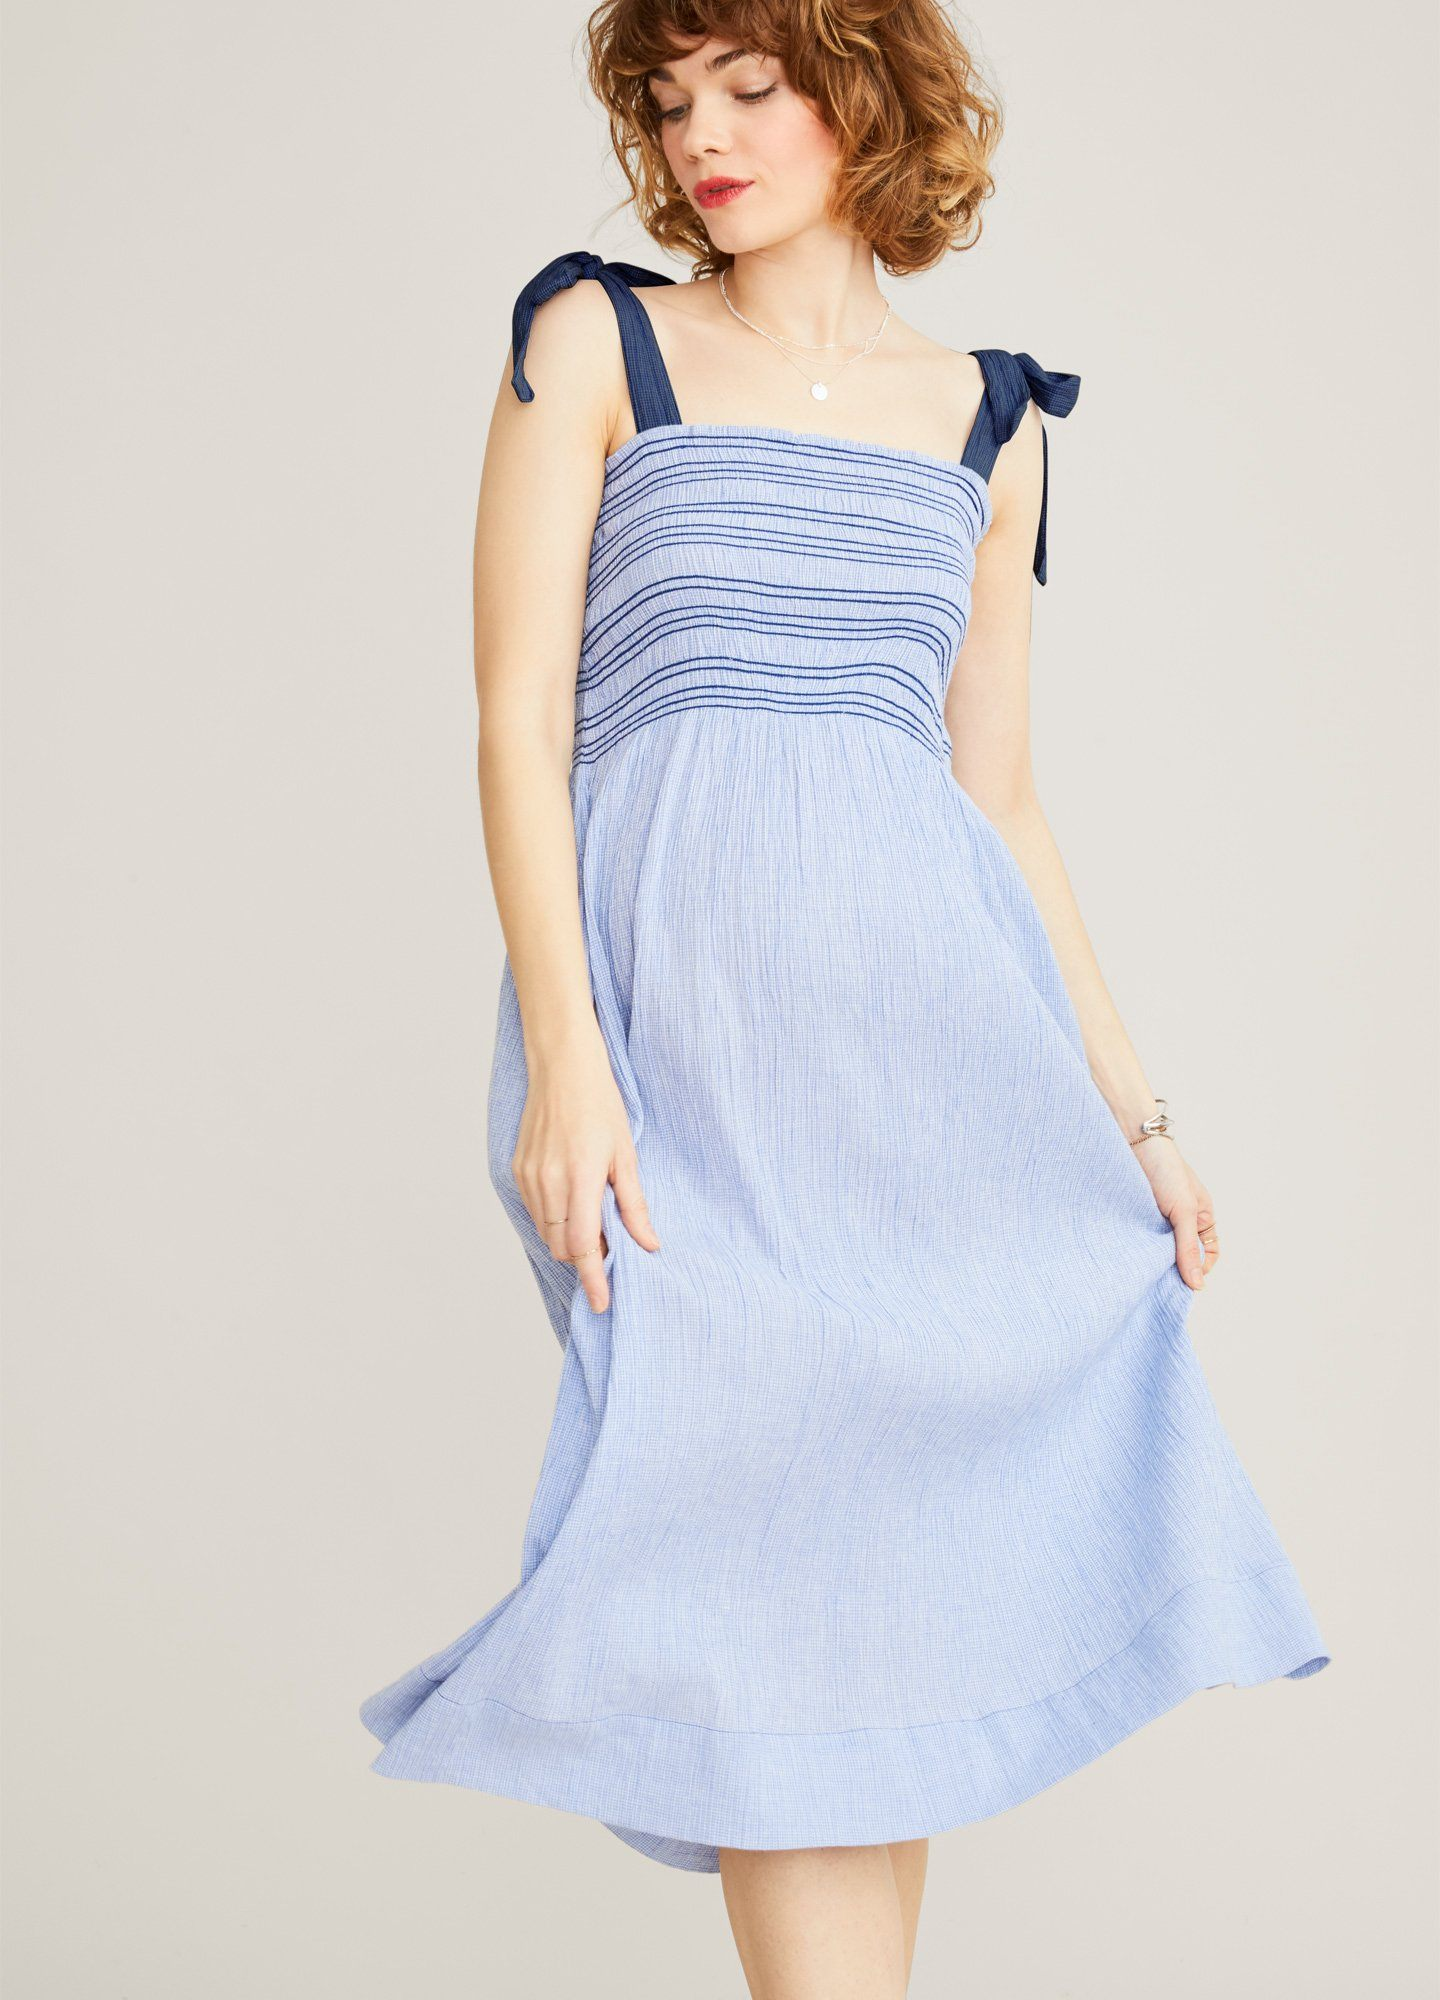 HATCH Maternity The Margaux Dress, Blue Gingham, Size 3